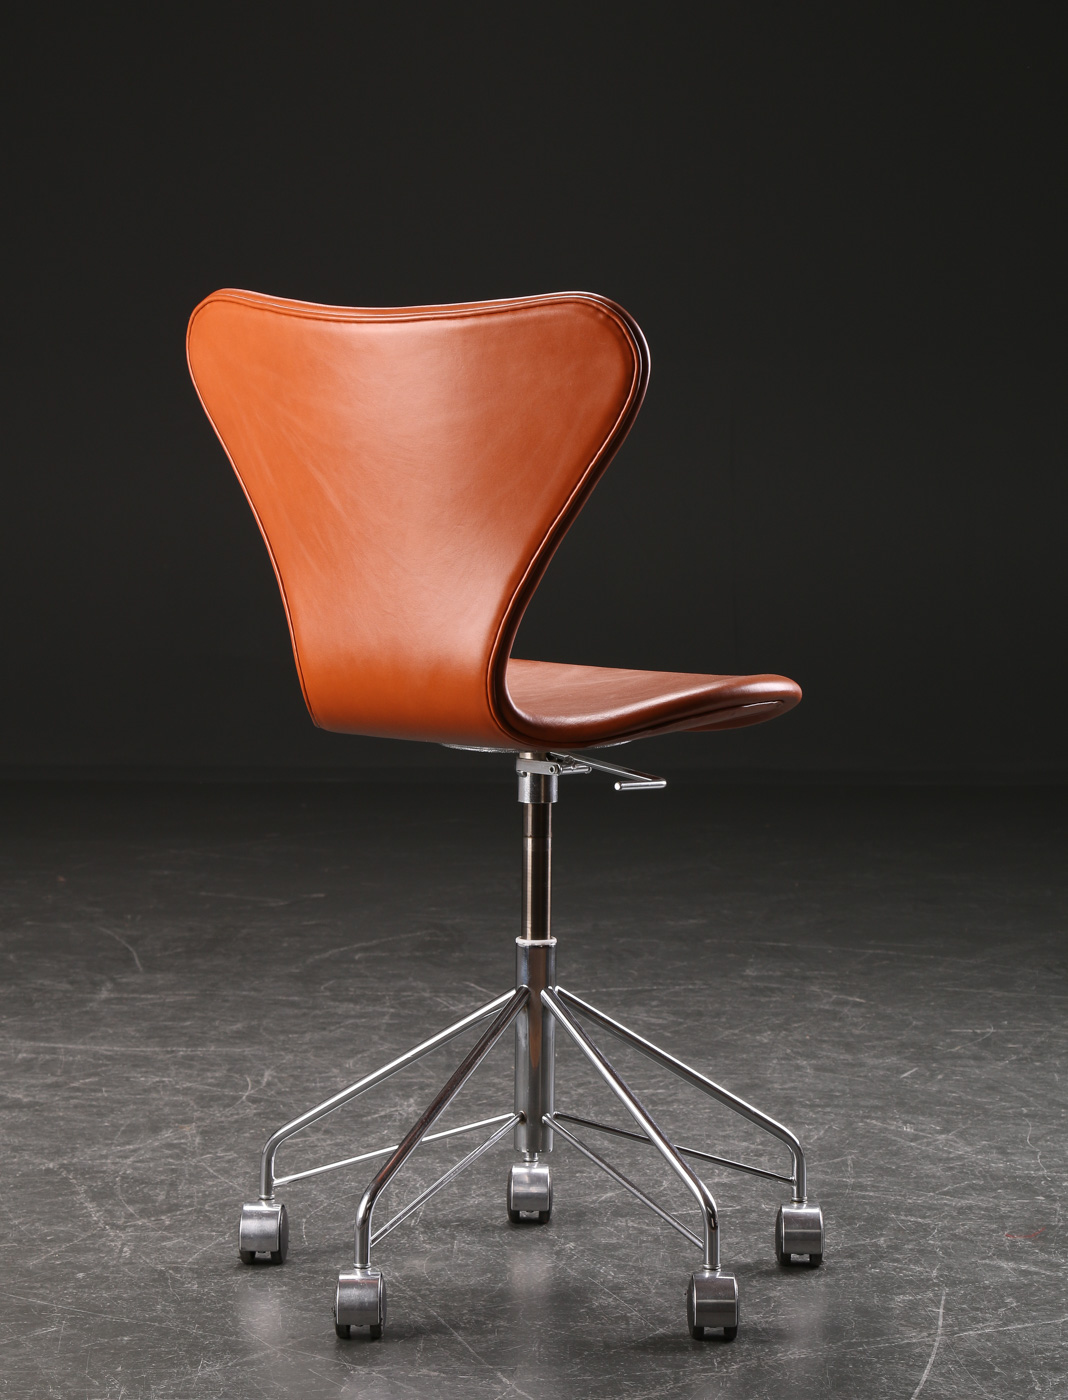 Arne Jacobsen. Office chair, model 3117, cognac leather